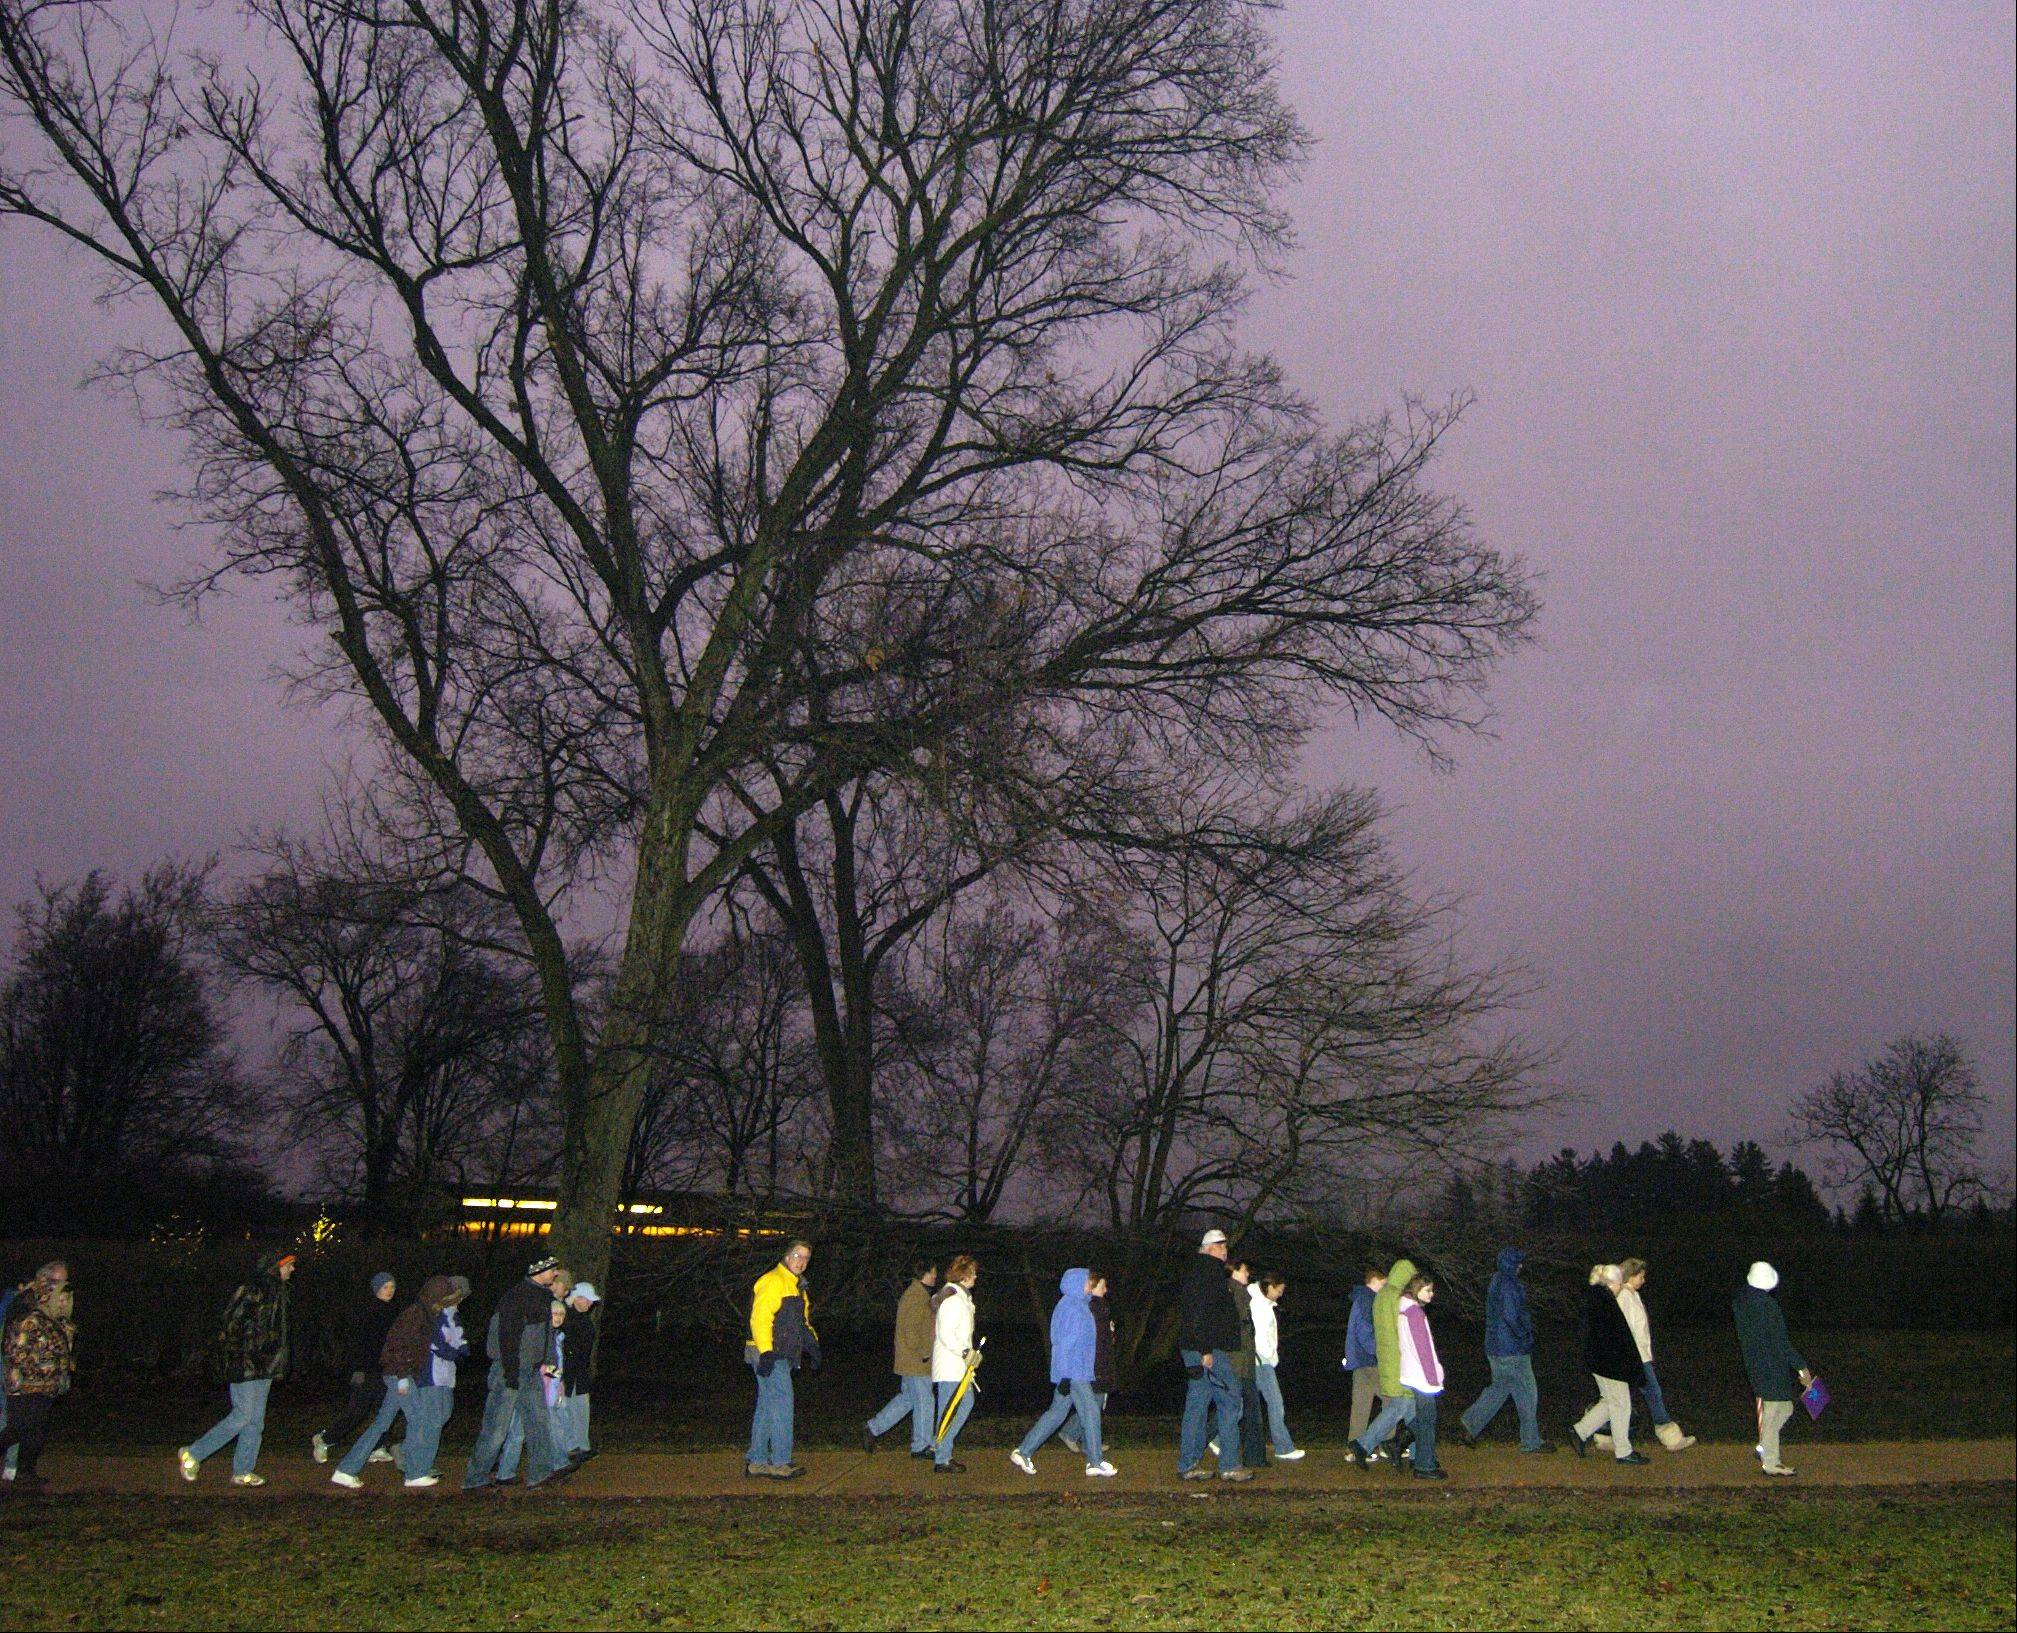 Participants during a previous winter solstice Walk make their way down the path at the Morton Arboretum in Lisle.